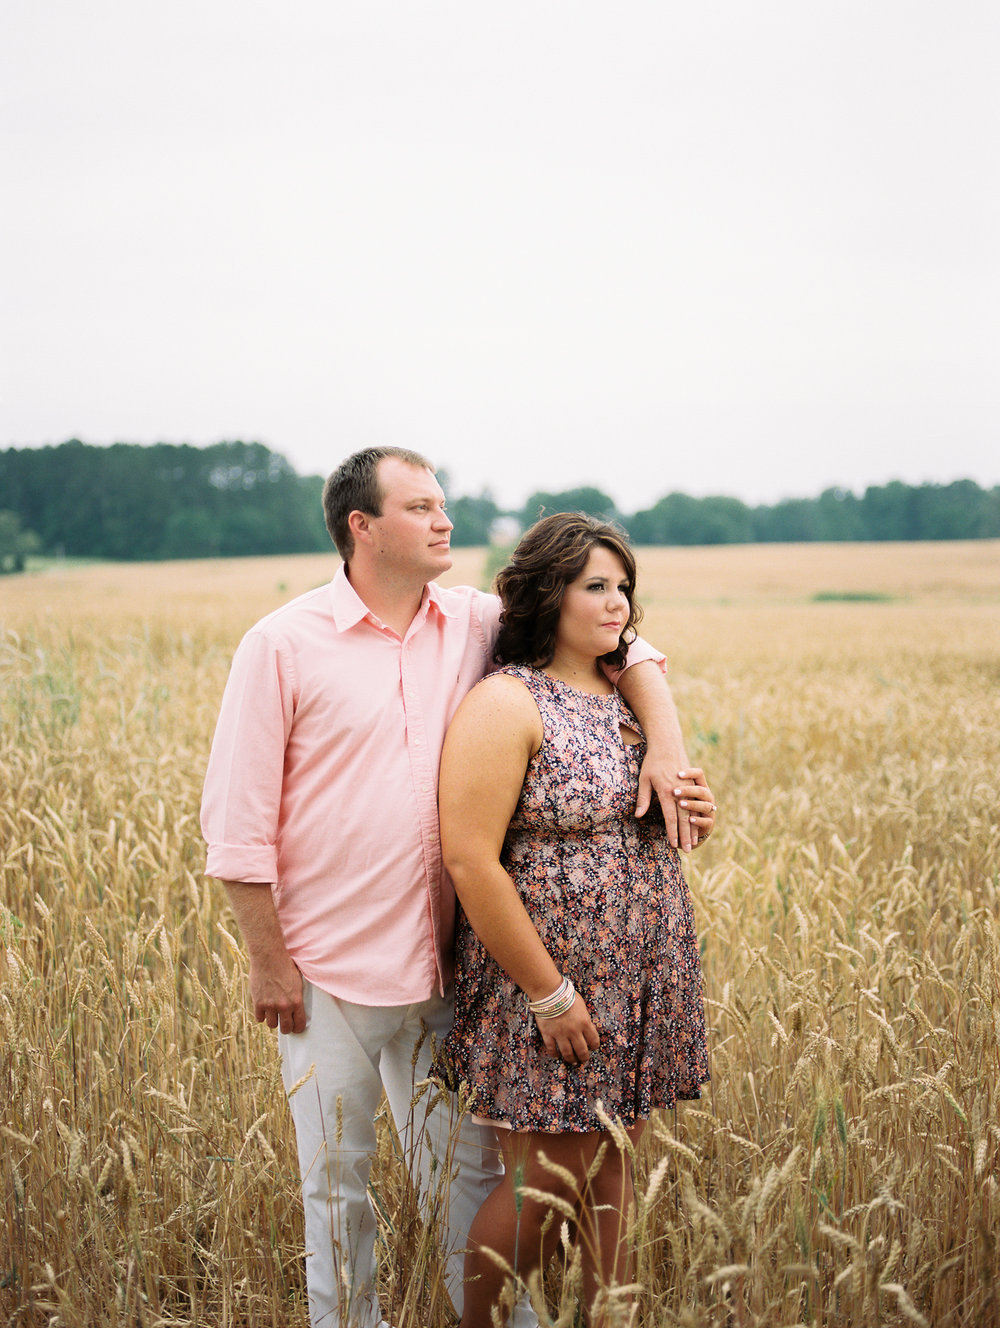 Makaya & Will - Engaged - Savannah, TN - © Kaitlyn Stoddard -Carter-1.jpg